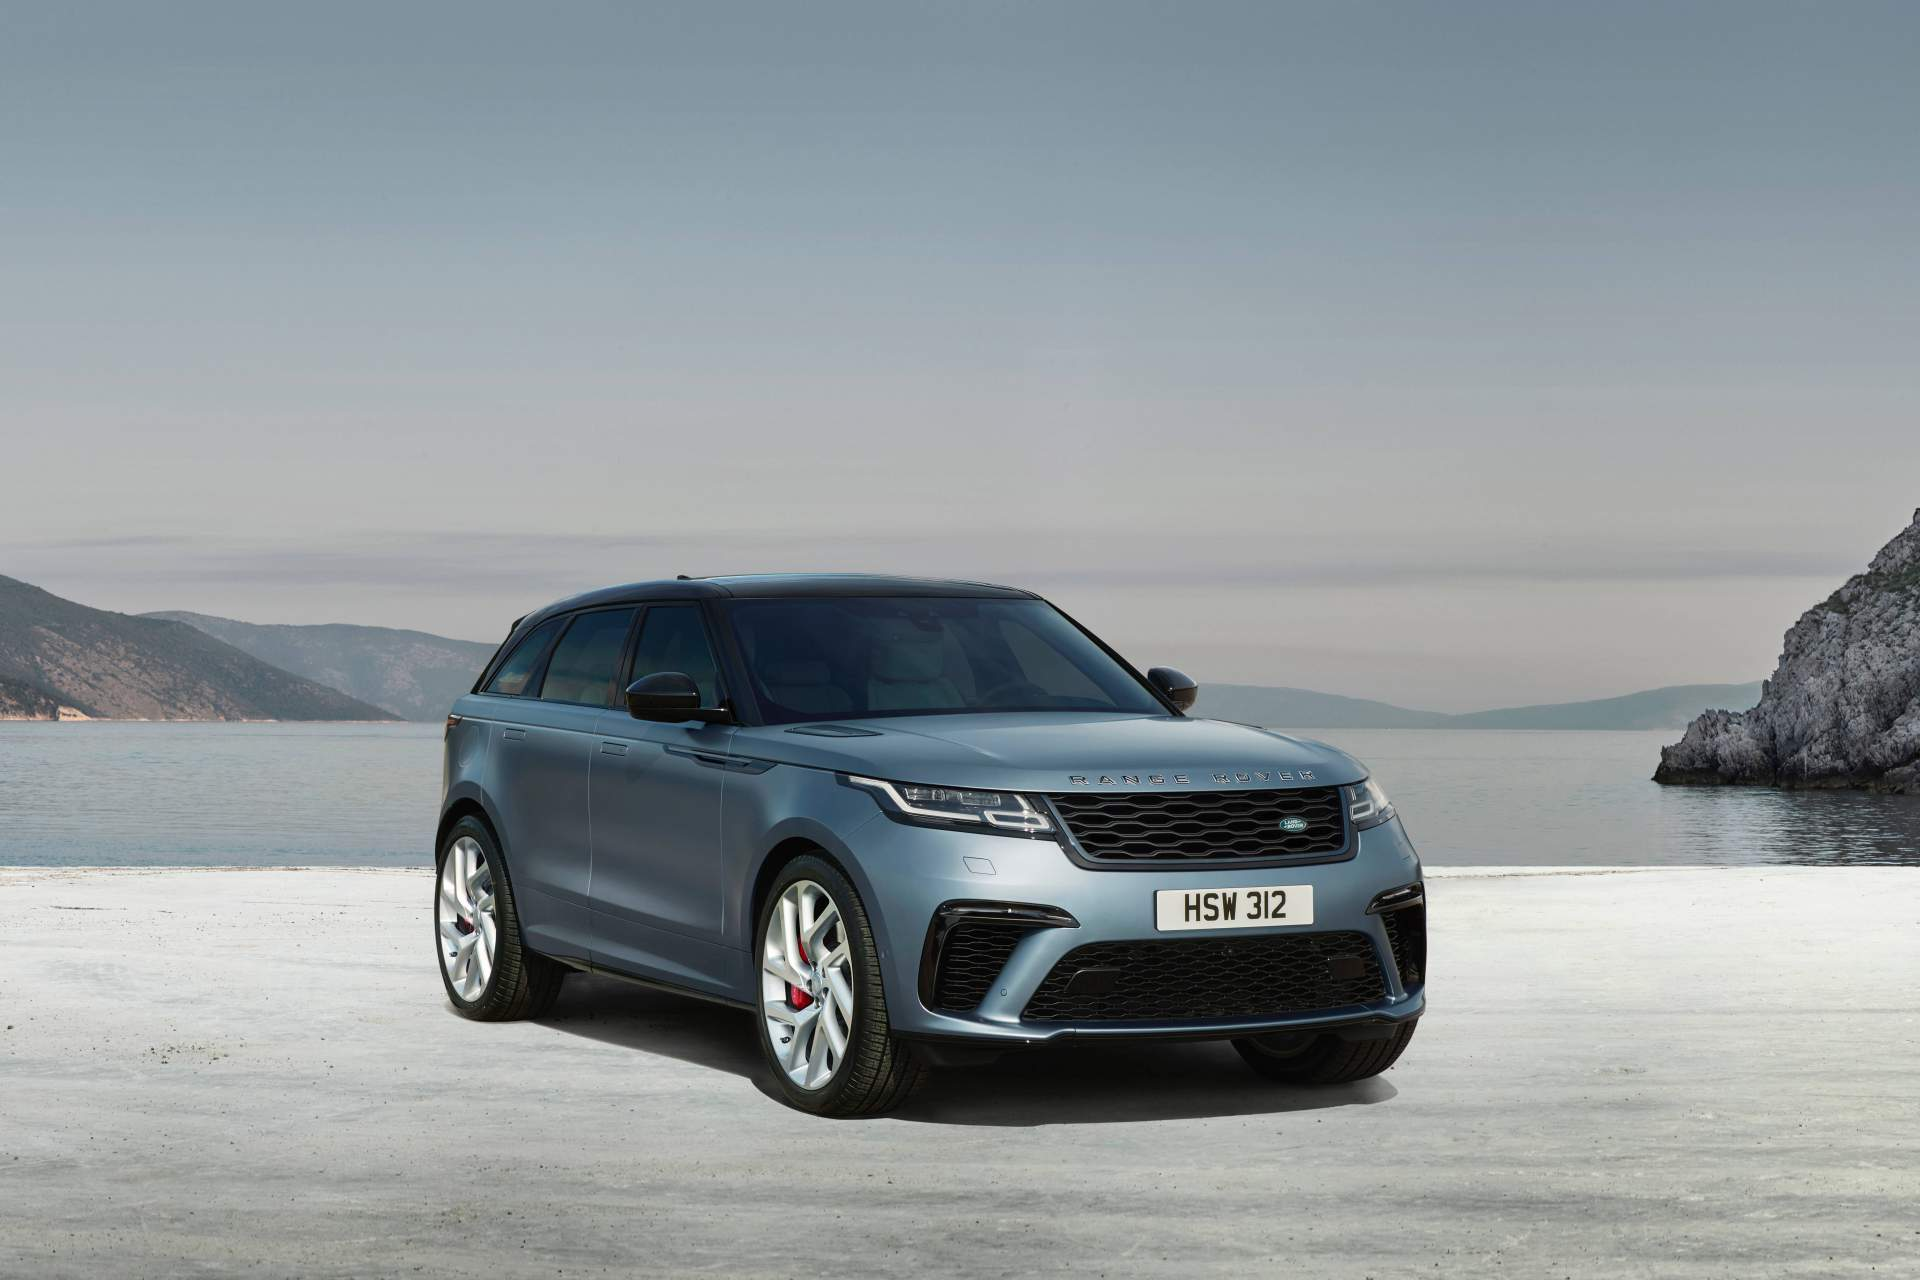 2019 Range Rover Velar SVAutobiography Dynamic Edition Front Wallpapers (11)